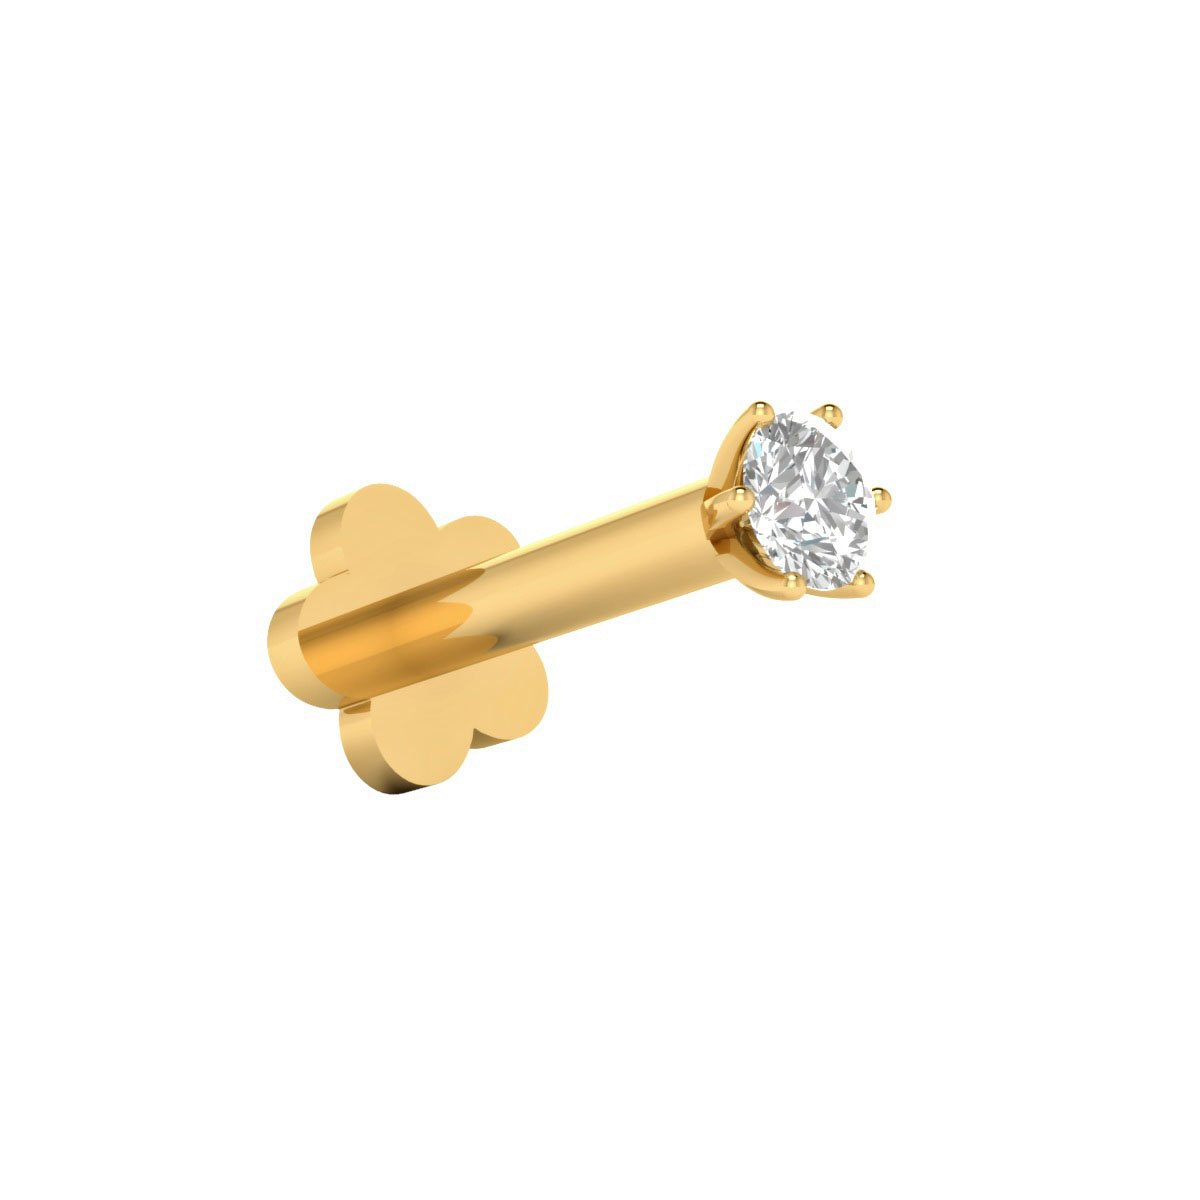 Animas Jewels DGLA Certified 14k Yellow Gold Solitaire Stud Nose Pin for Women 0.02 Cttw Natural Diamond (G-H Color. I1 Clarity) Round Cut 6-Prong Setting Available 8 mm Length Gifts by Animas Jewels